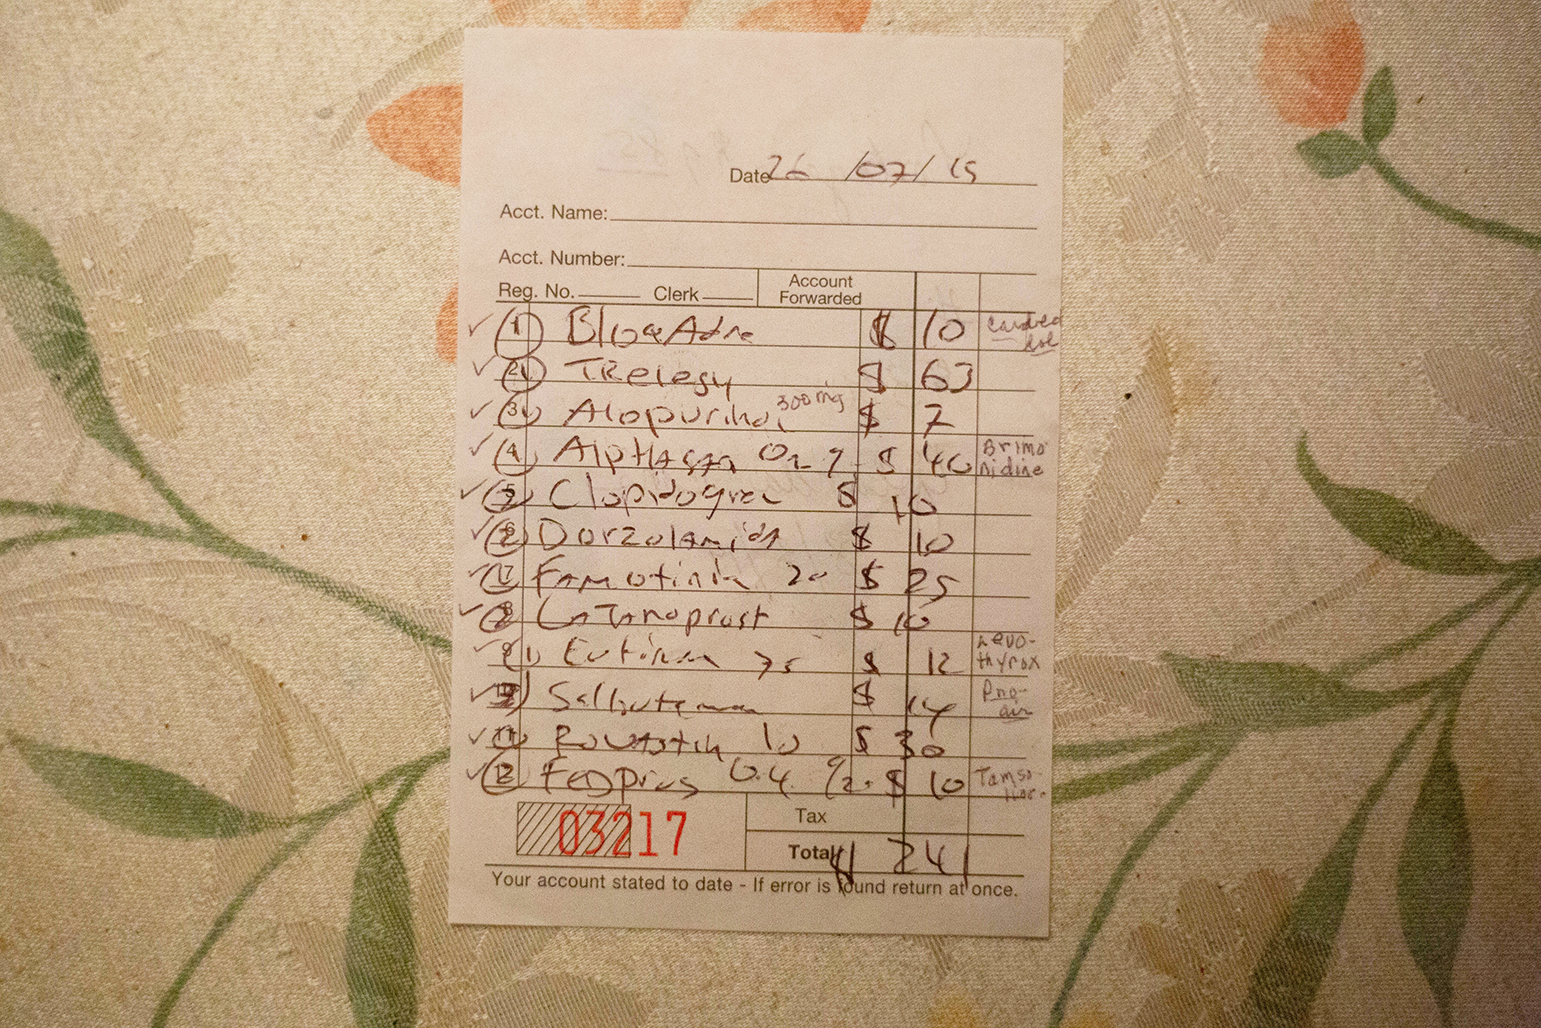 A list of prescription drugs and their prices